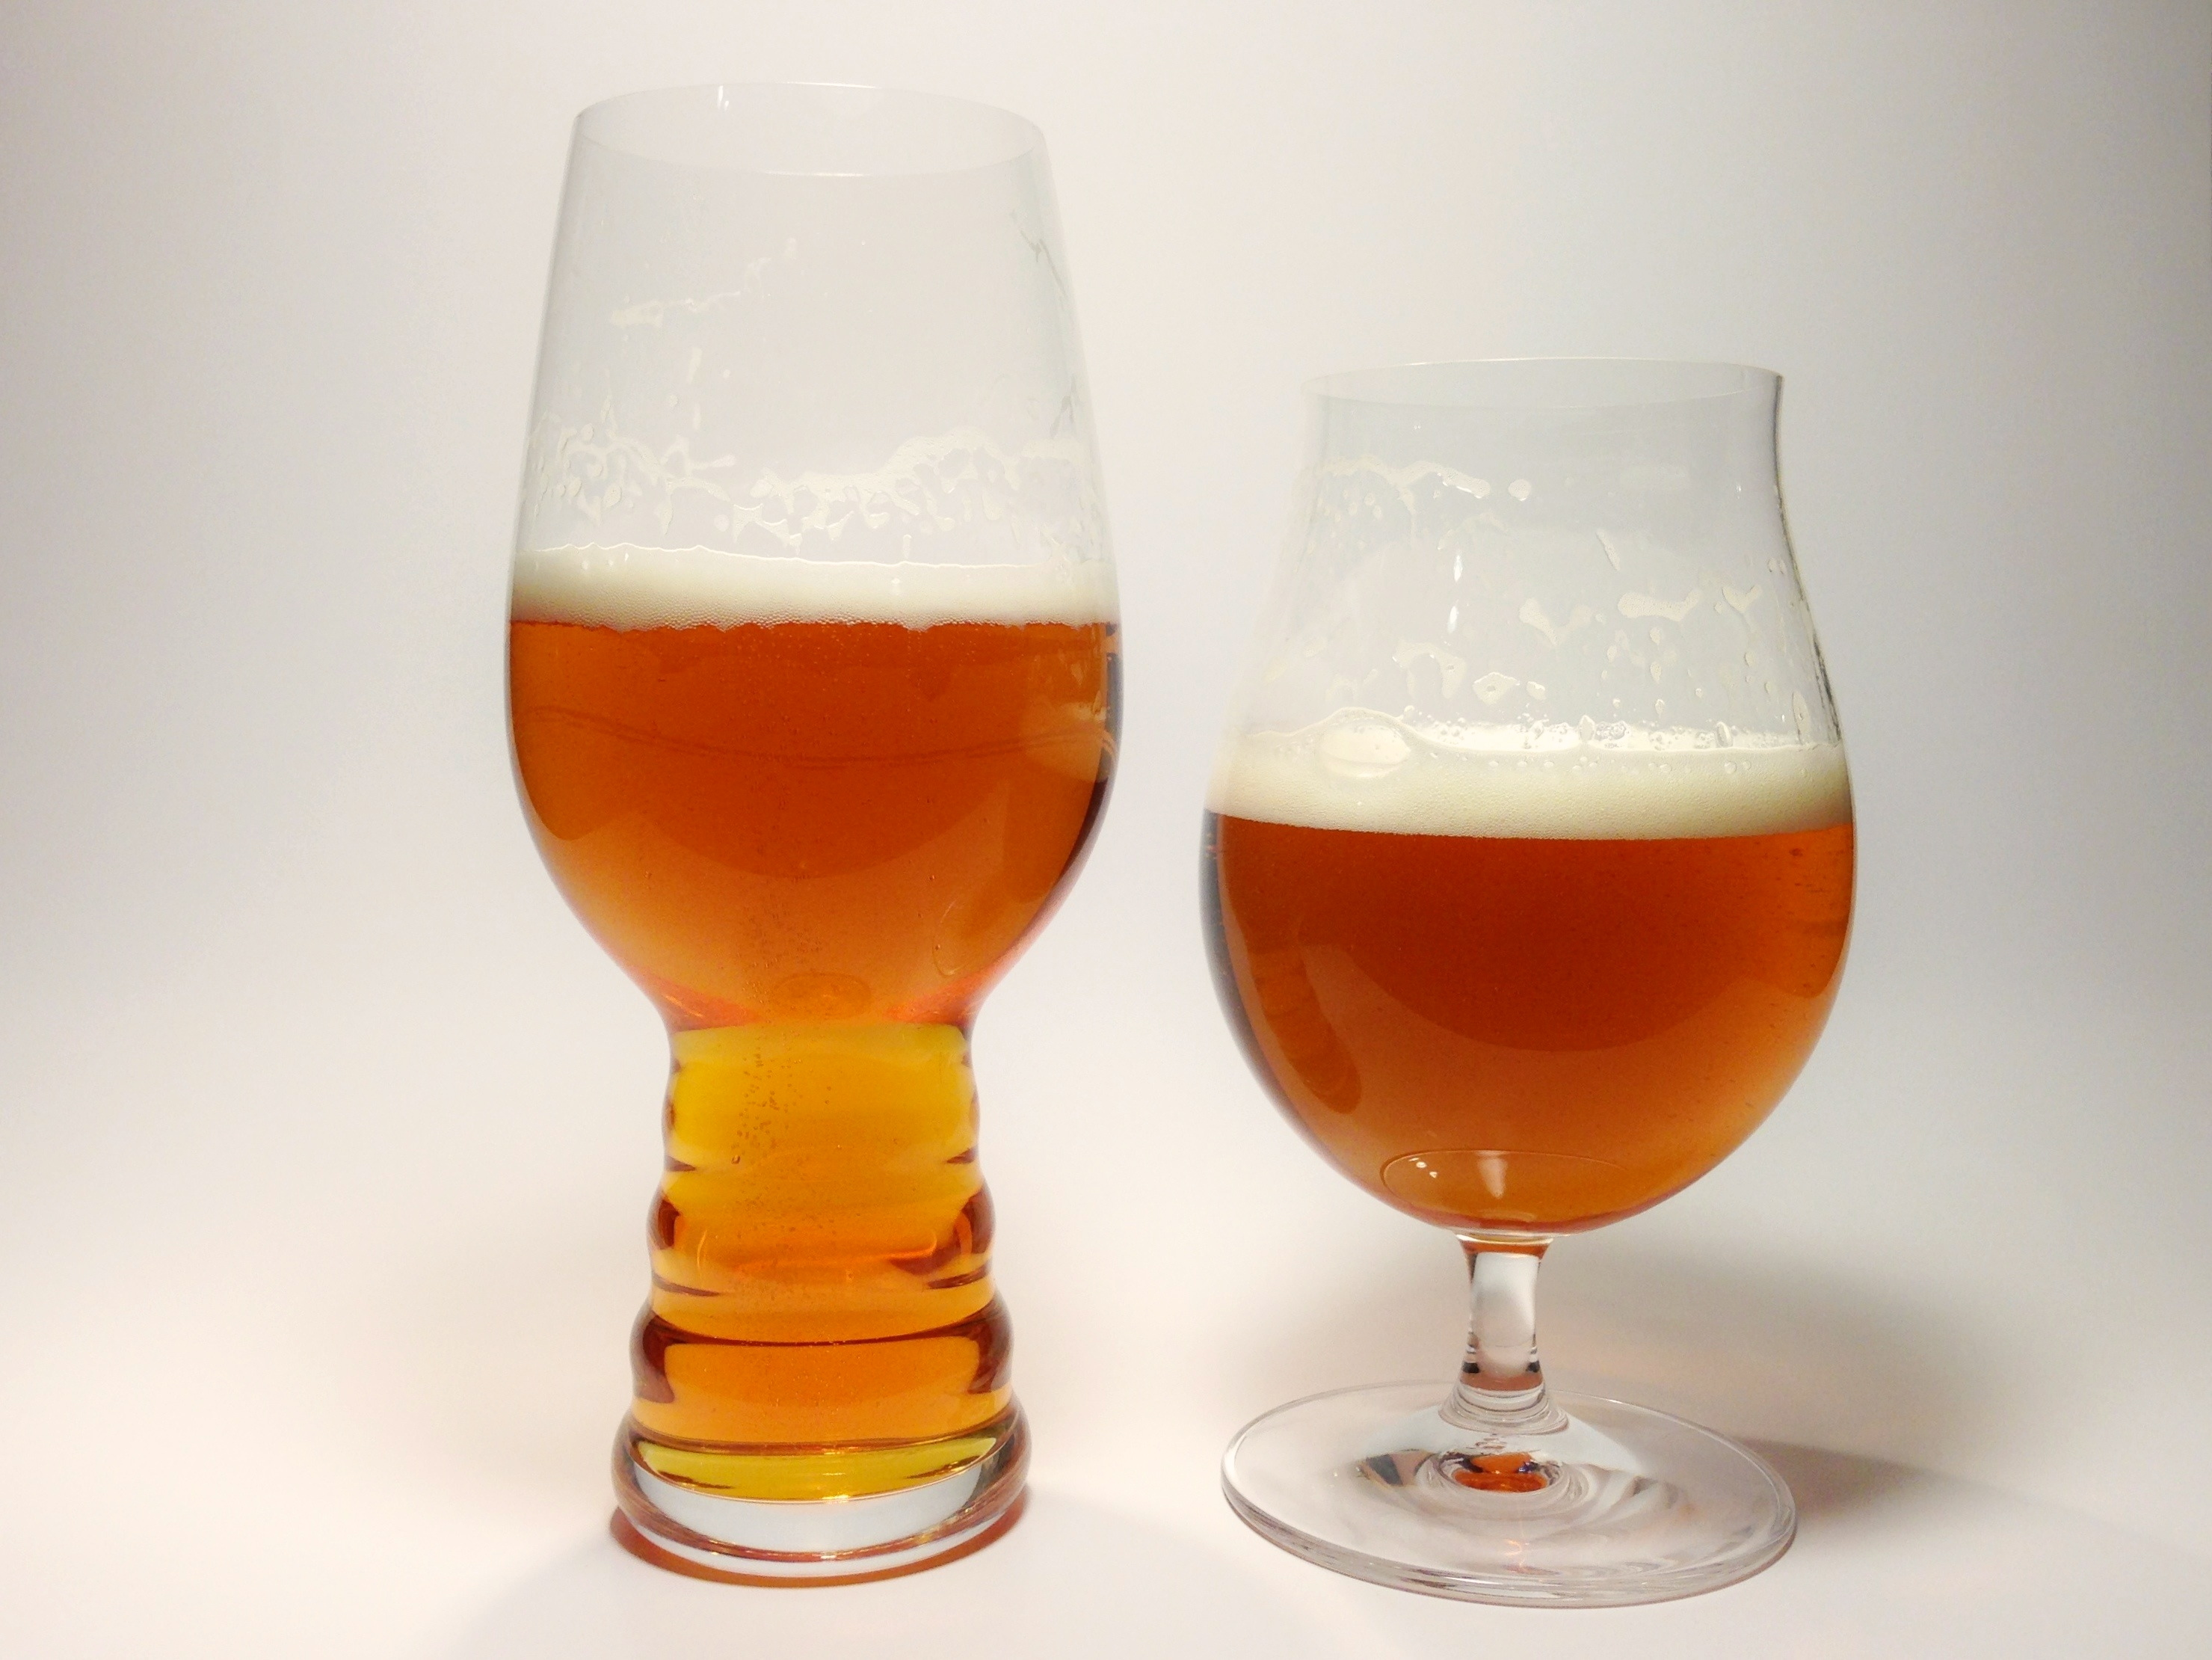 The Ipa Glassware Review Hooked On Hops The Las Vegas